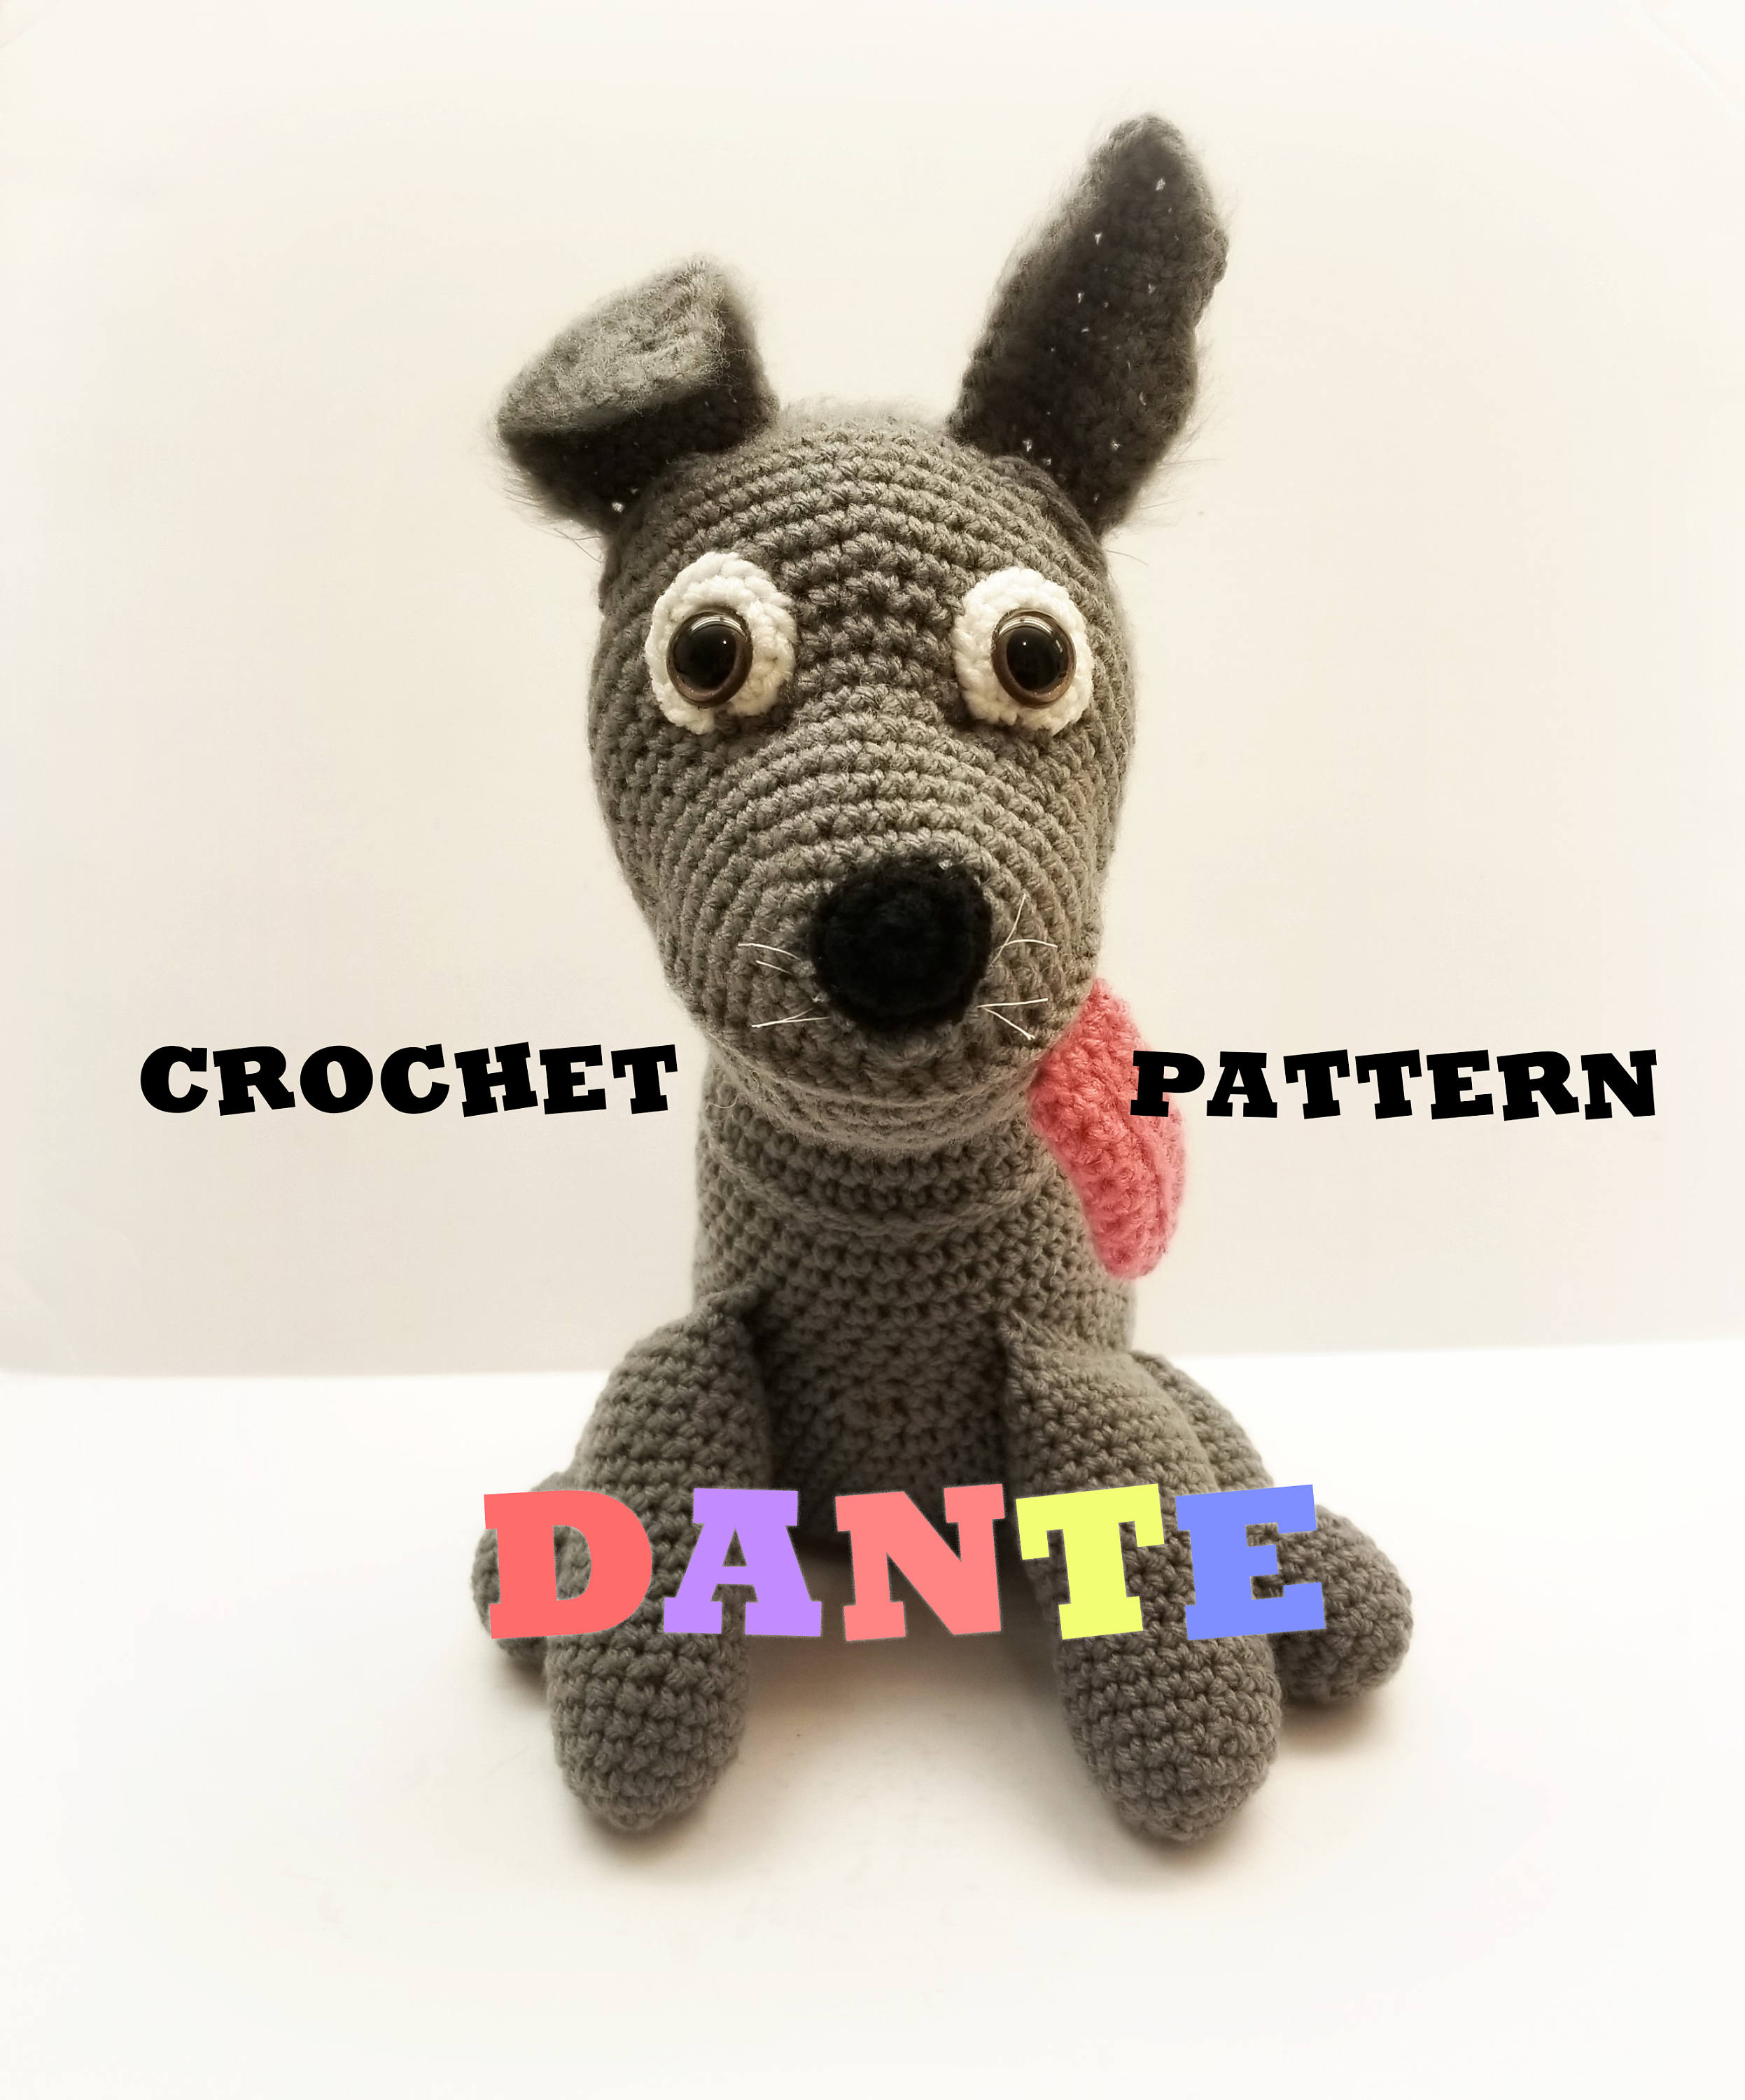 Crochet Dante Pattern Inspired / Fan Made From